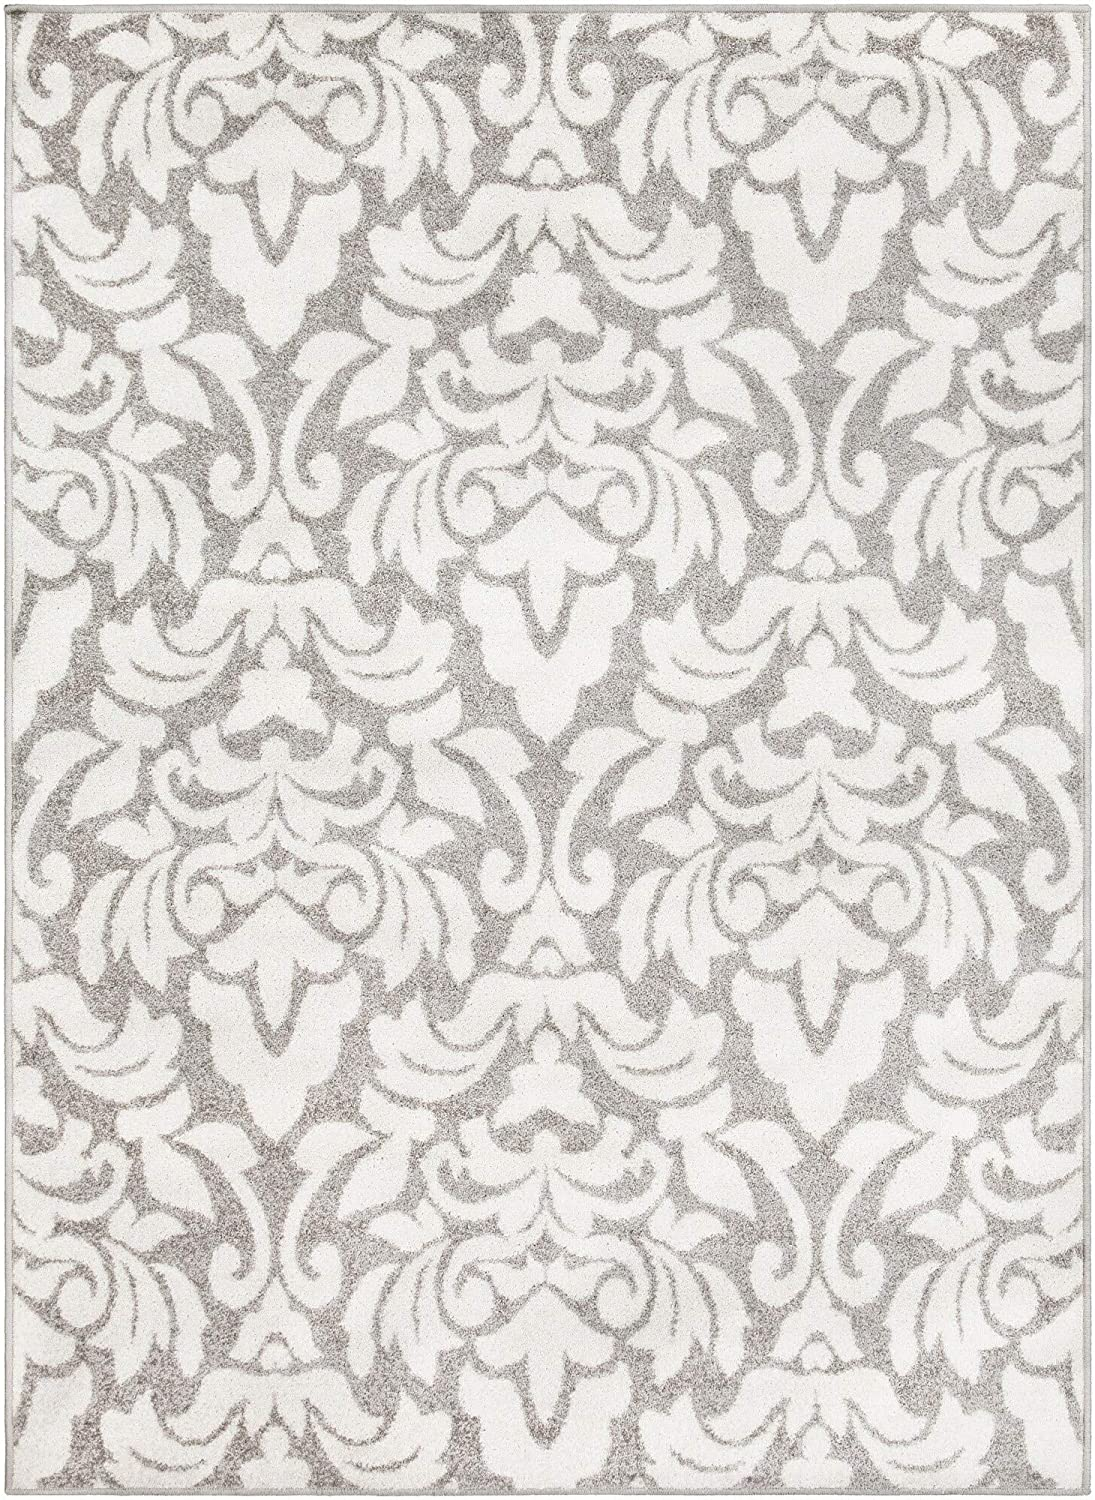 "MISC Grey Transitional Damask Area Rug 7'10"" X 10'3"" White Floral Botanical Rectangle Polypropylene Synthetic Latex Free Pet Friendly Stain Resistant"